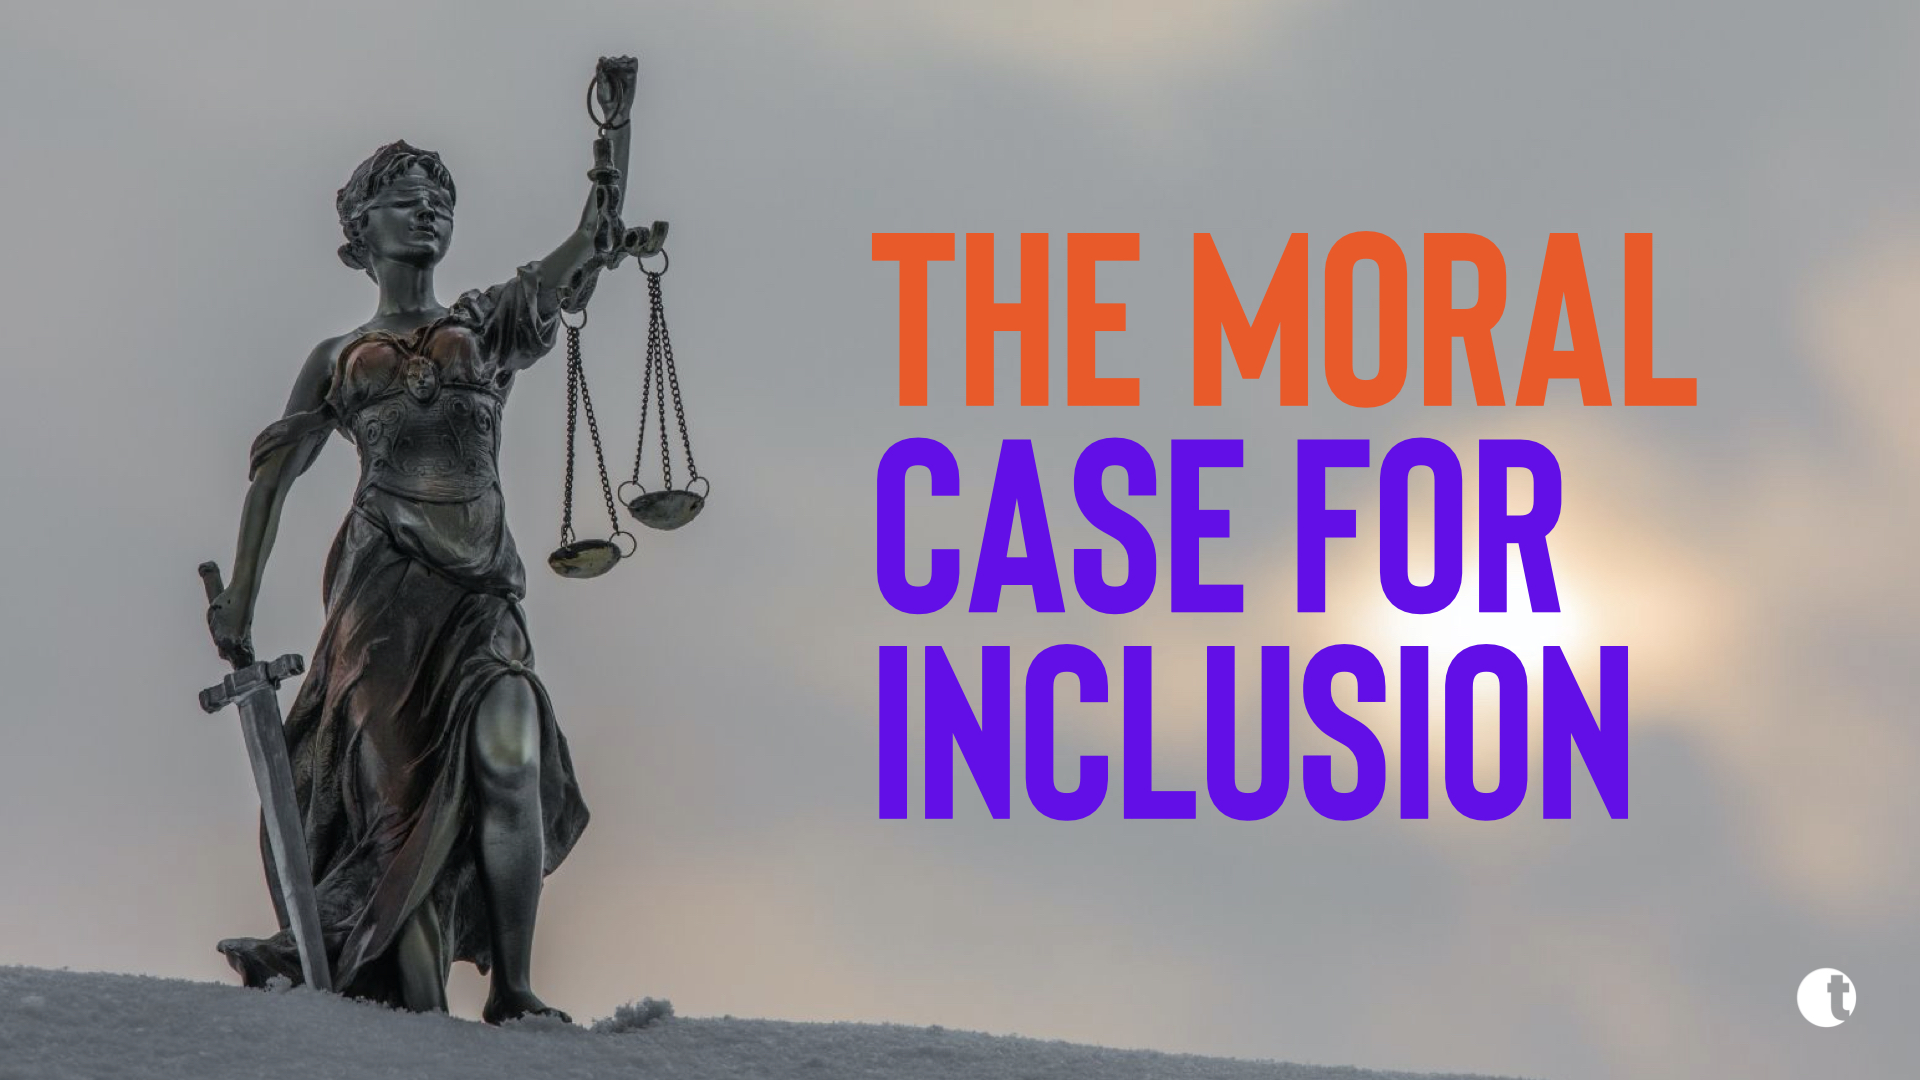 The moral case for inclusion